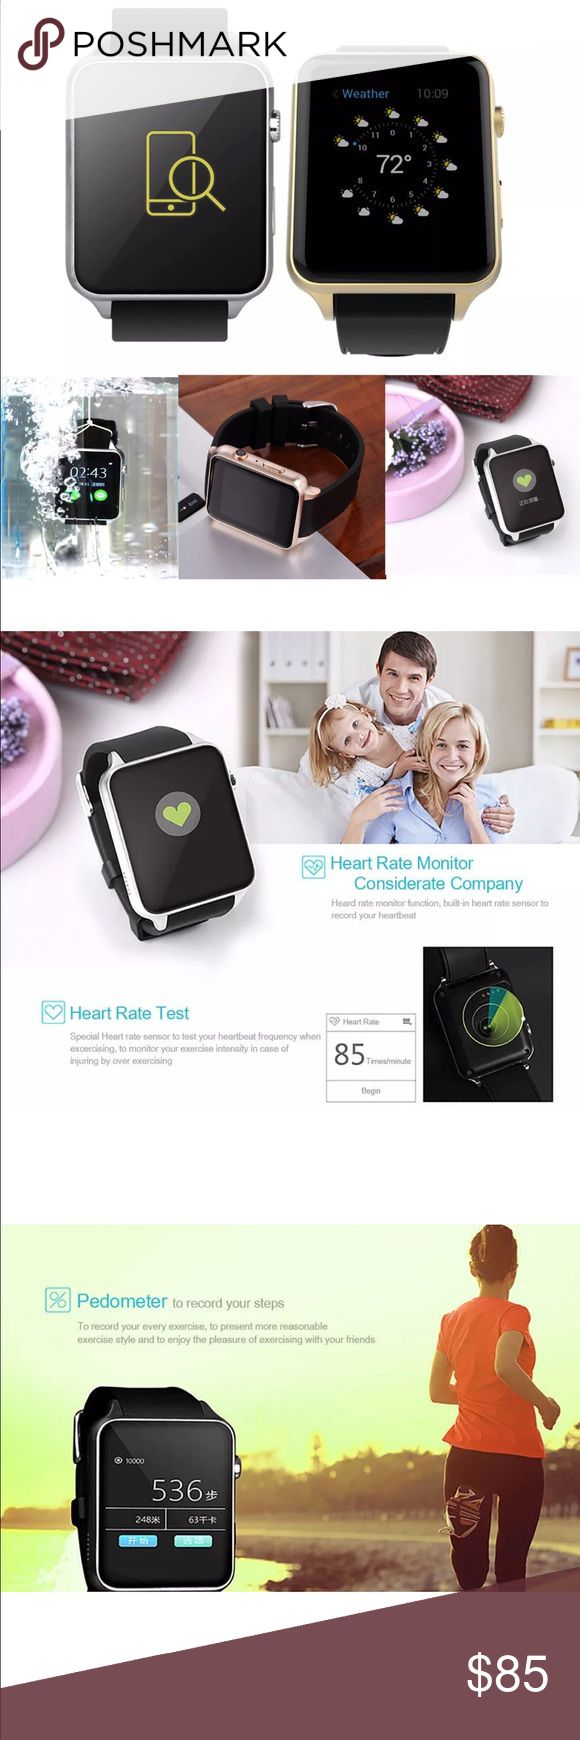 Waterproof Bluetooth Smartwatch iPhone/Android For IPhone / Android Description: Color: Silver Camera: 2.0M Resolution: 240 * 240 pixel Dimensions: 45.2 * 39 * 12.2 mm Memory: 128MB + 32MB Features: Phone book, Bluetooth phone. SMS: Local SMS; SMS Bluetooth synchronization push. Entertainment: MP3, MP4, AVI format for local playback, Bluetooth music playback. Calls to remind: ringing and vibrating alert.Clock Display: sets display clock, free to switch; click to toggle heart. Bidirectional…